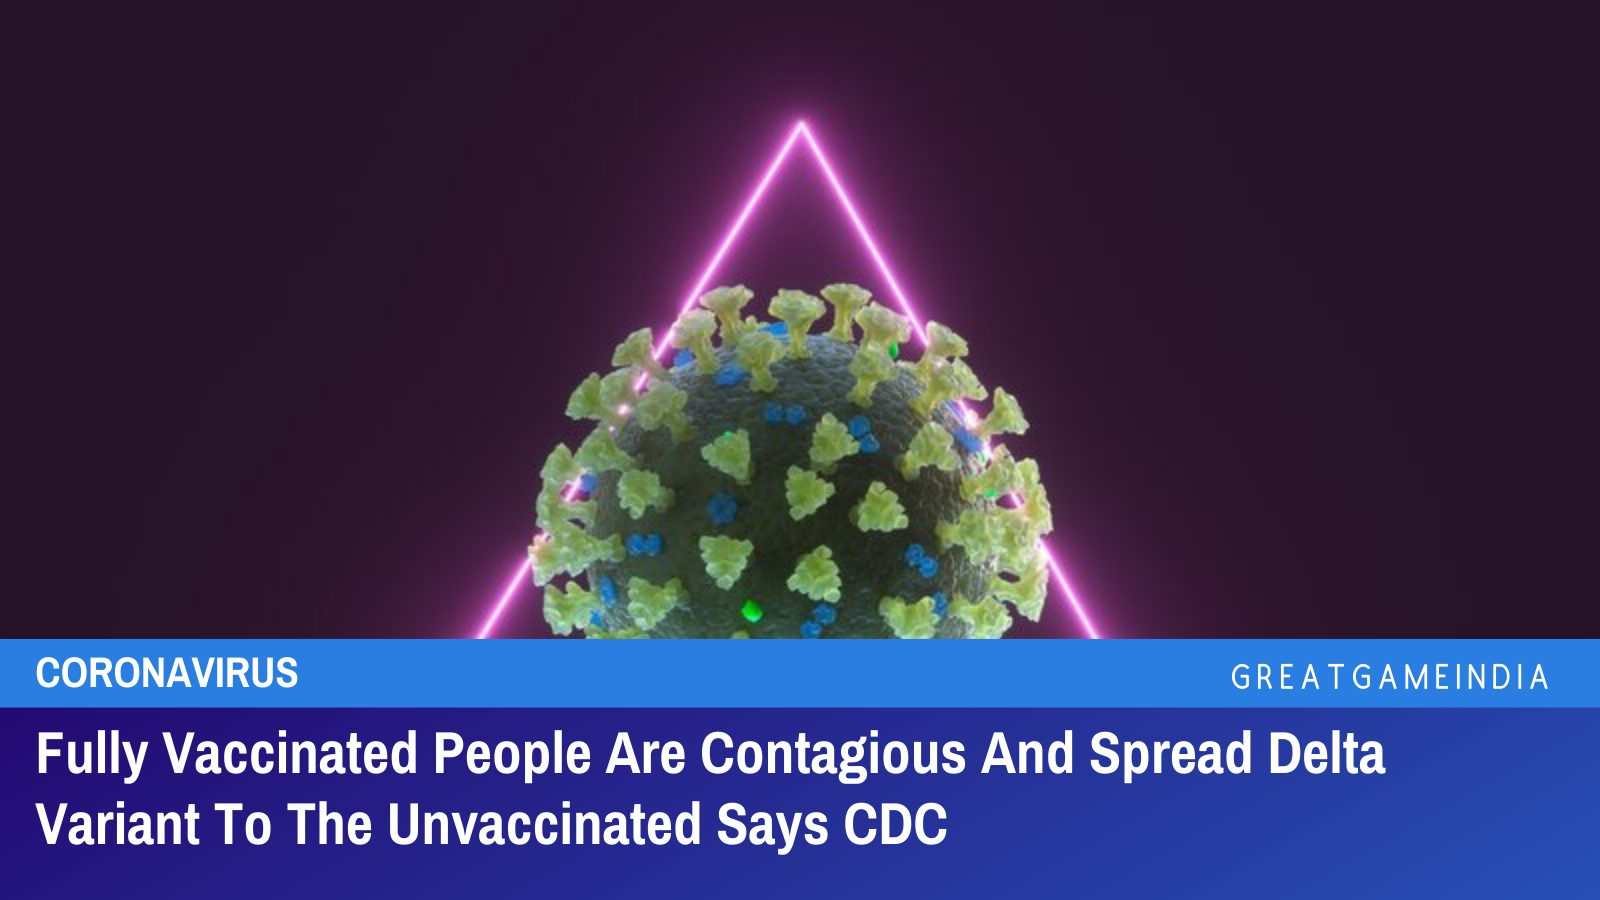 Fully Vaccinated People Are Contagious And Spread Delta Variant To The Unvaccinated Says CDC